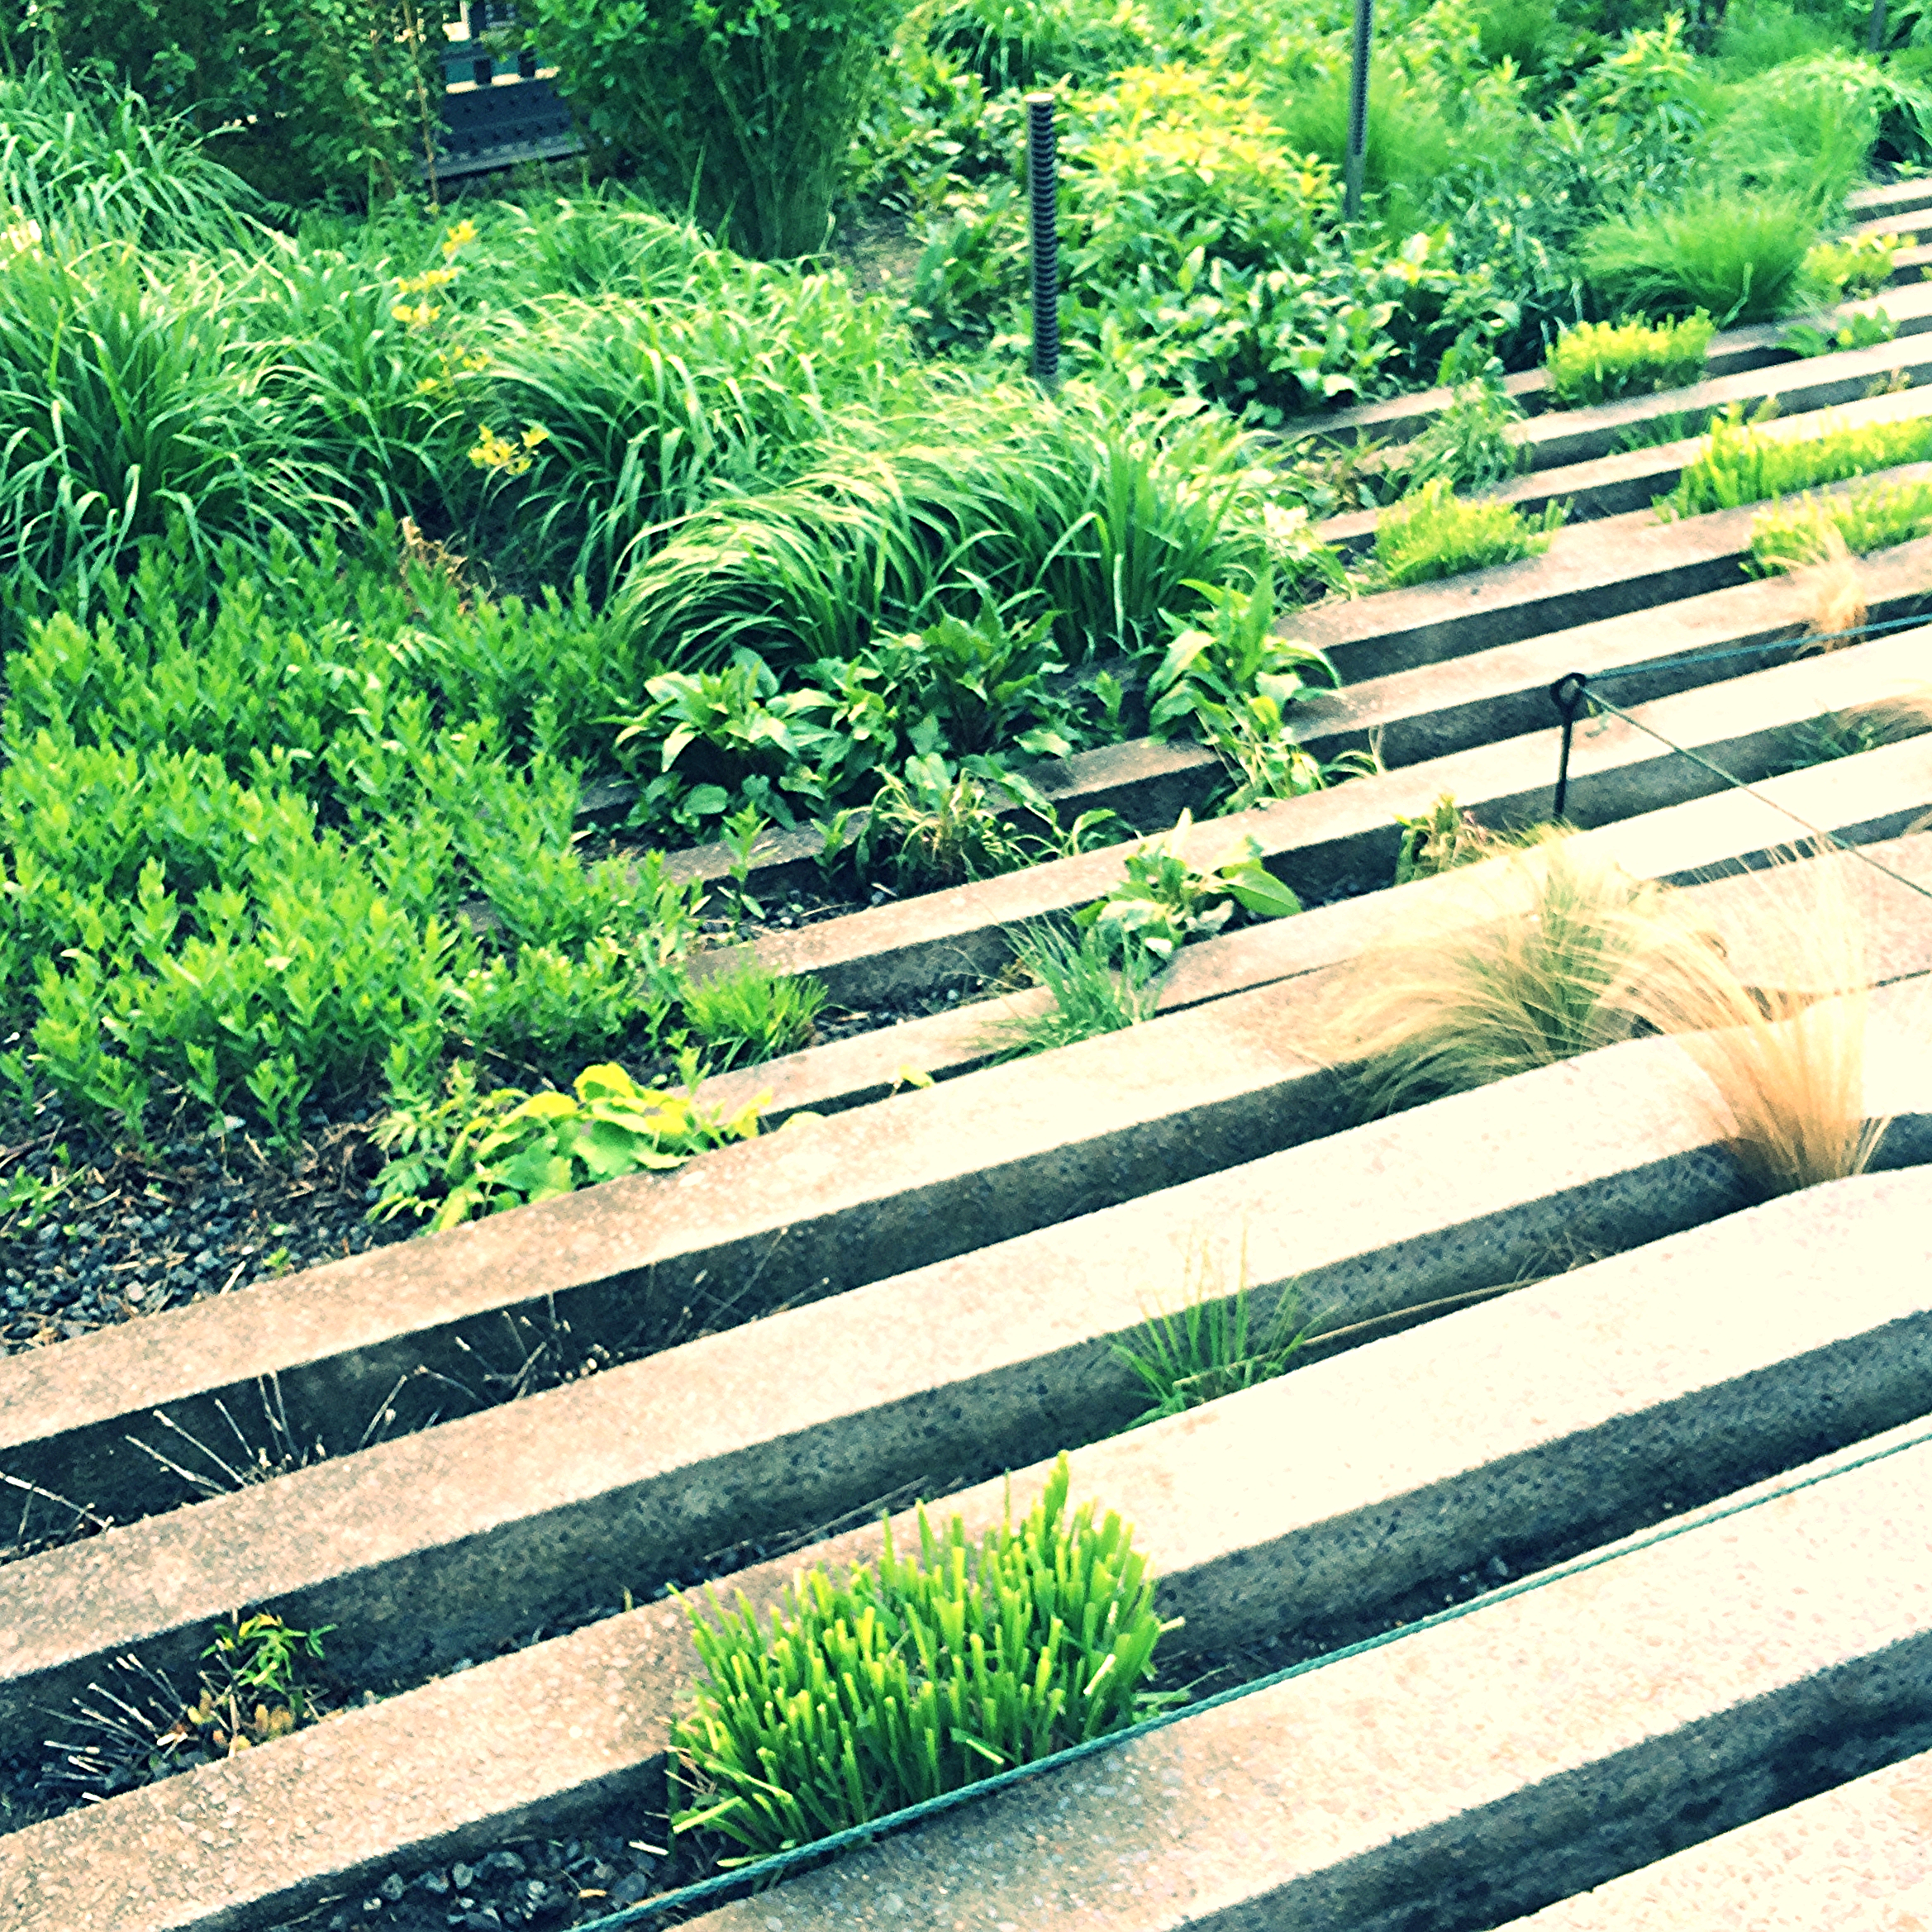 an interesting mix of concrete lines intermixed with softer planting